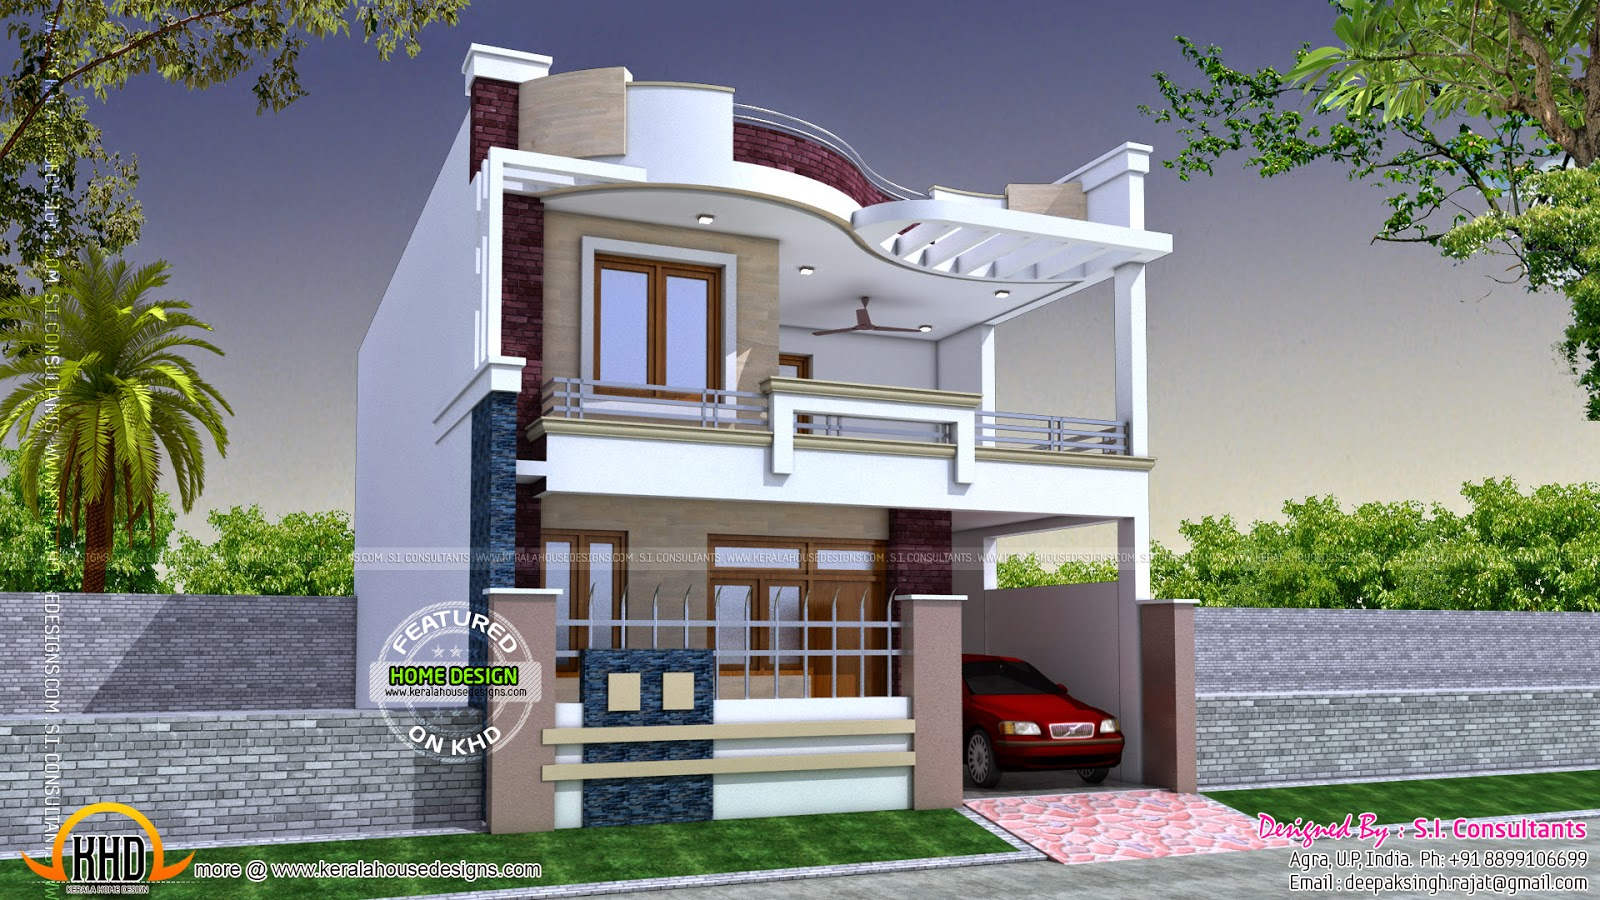 Modern indian home design kerala home design and floor plans for Home front design in indian style